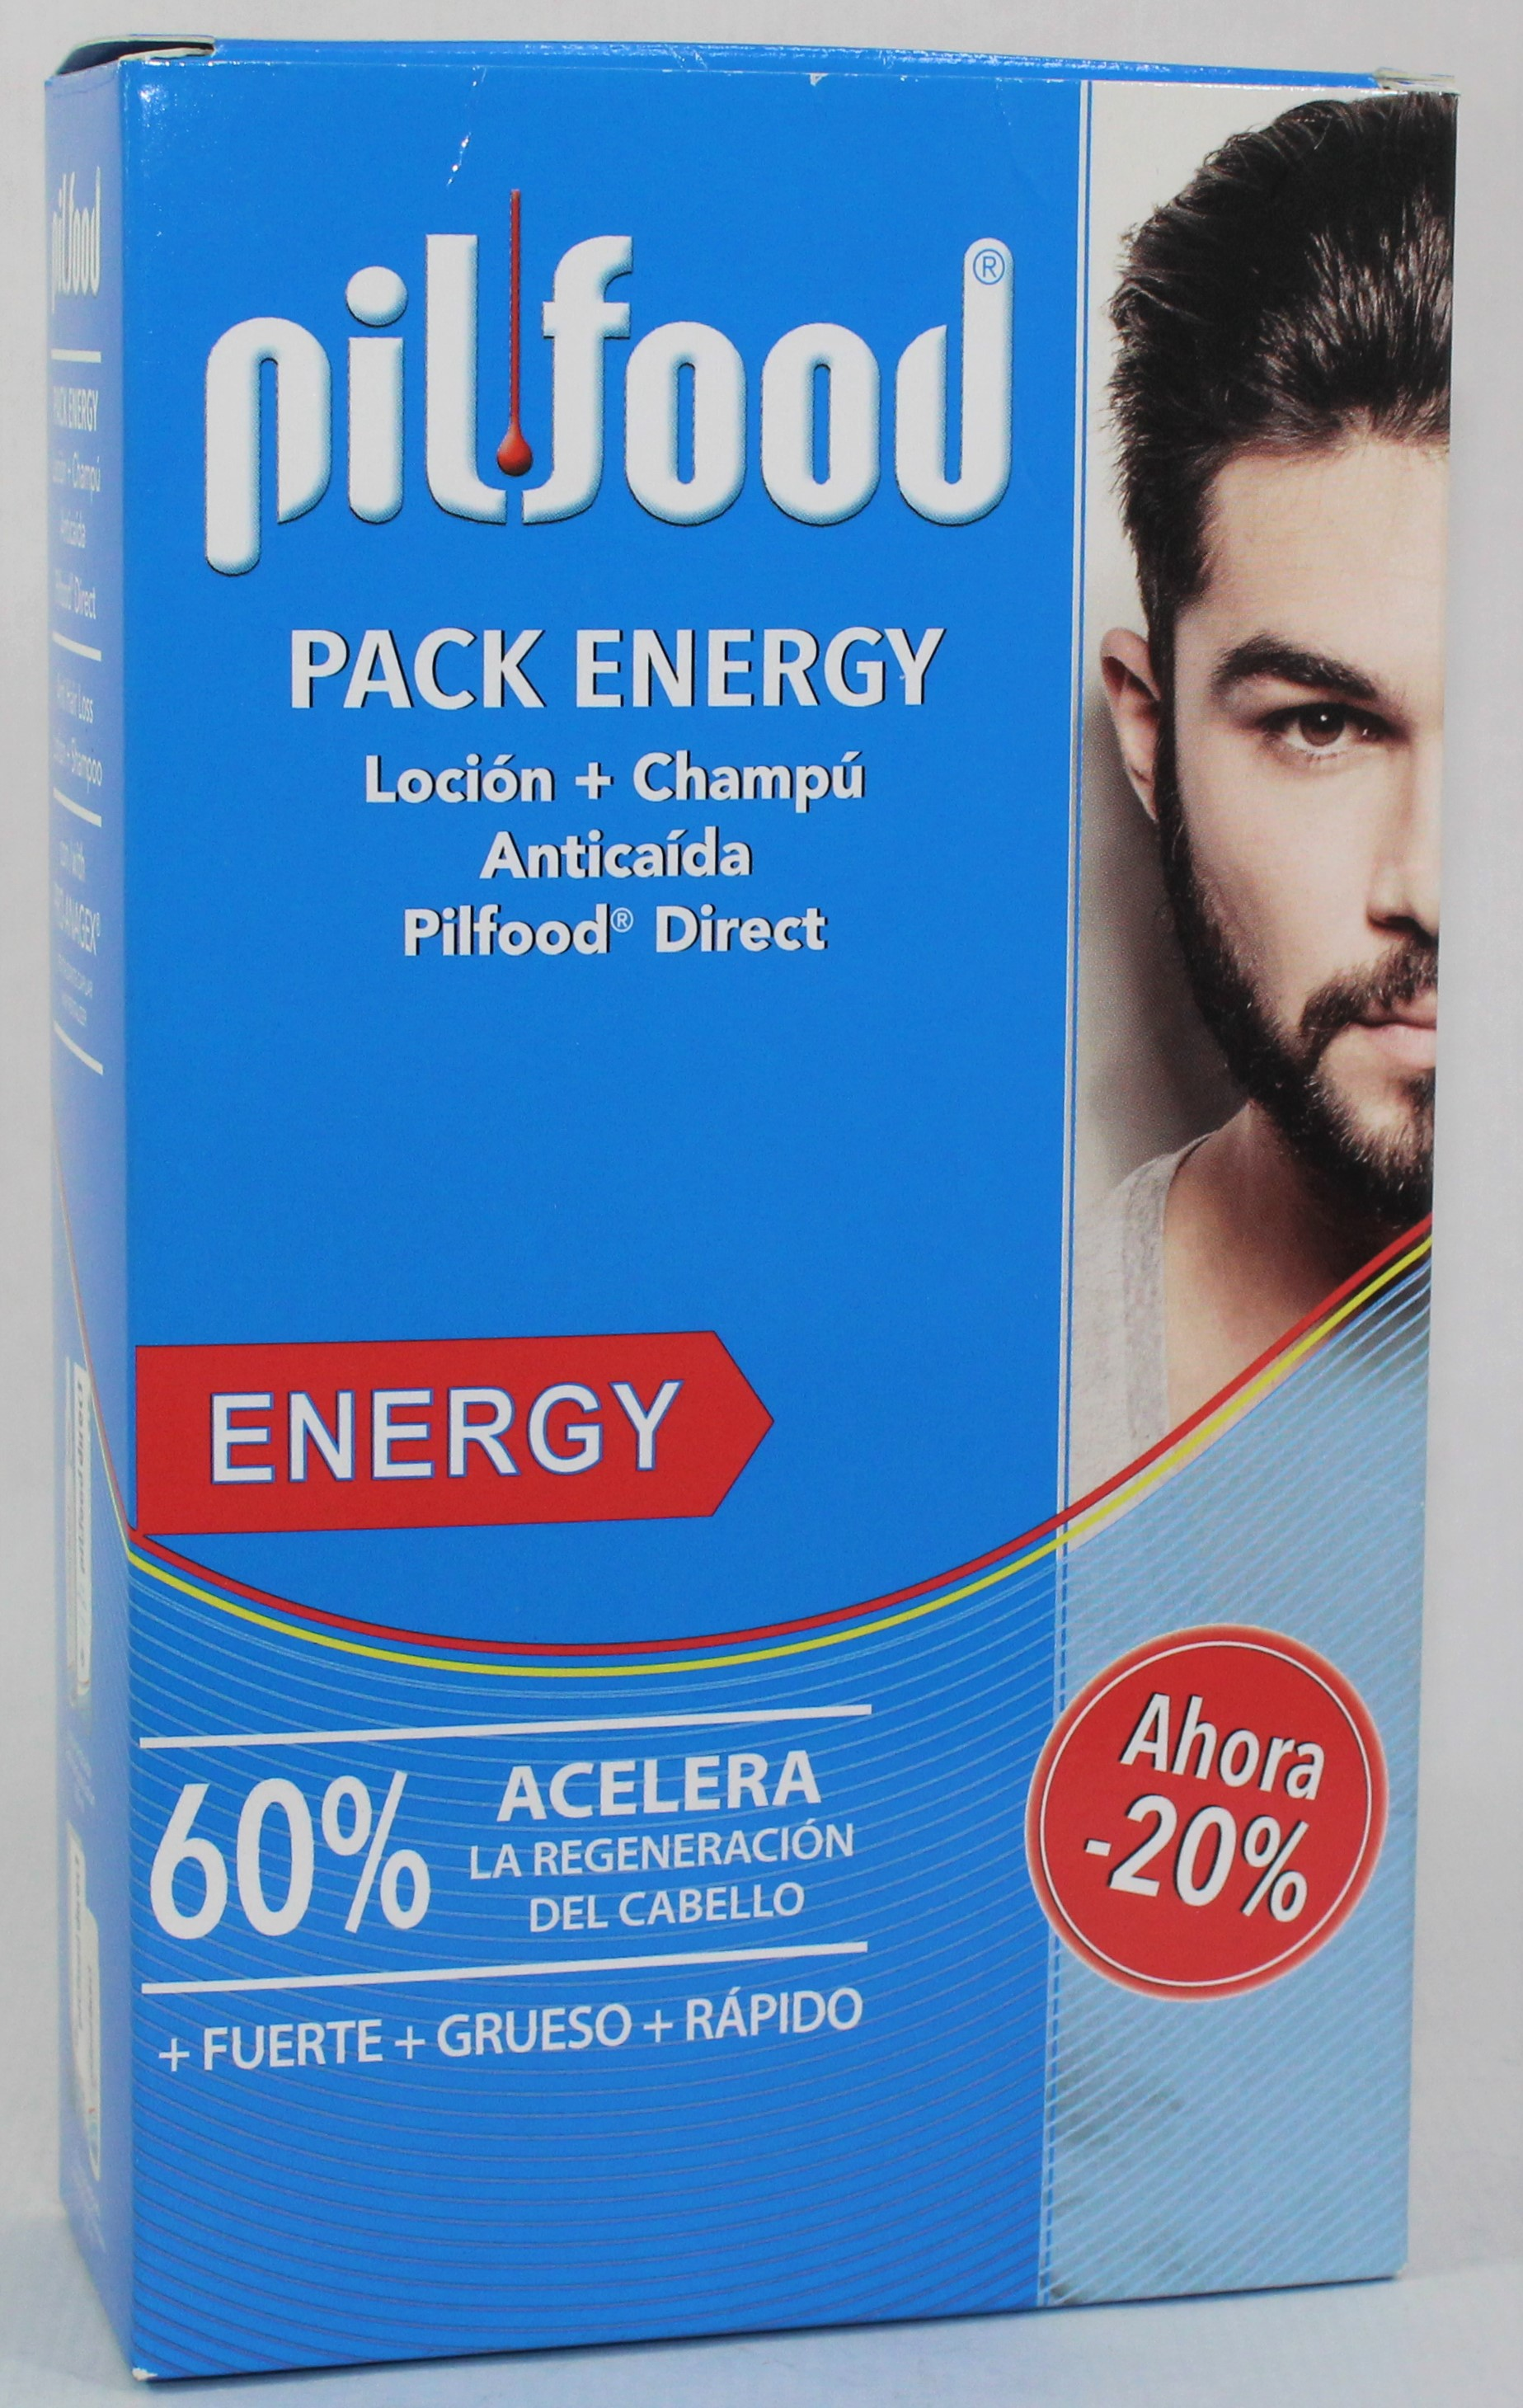 PILFOOD PACK ENERGY (LOCION + CHAMPU)